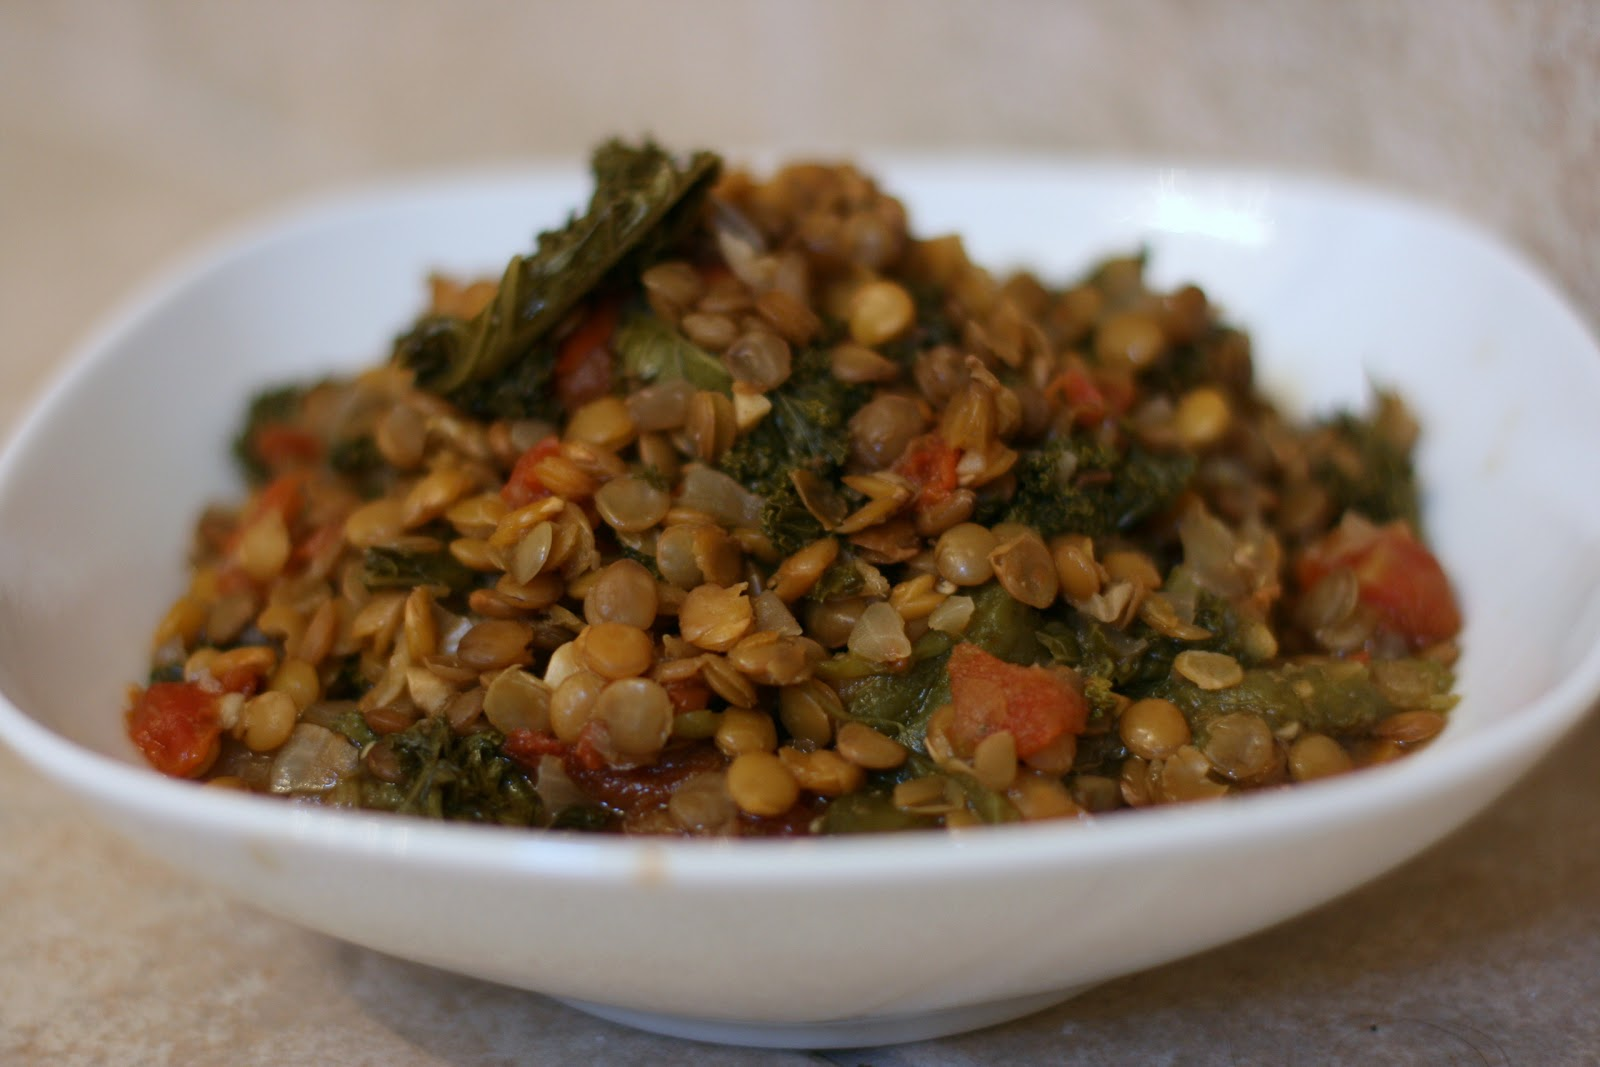 Lentil And Kale Super Food Slow Cooker Recipe A Year Of Slow Cooking